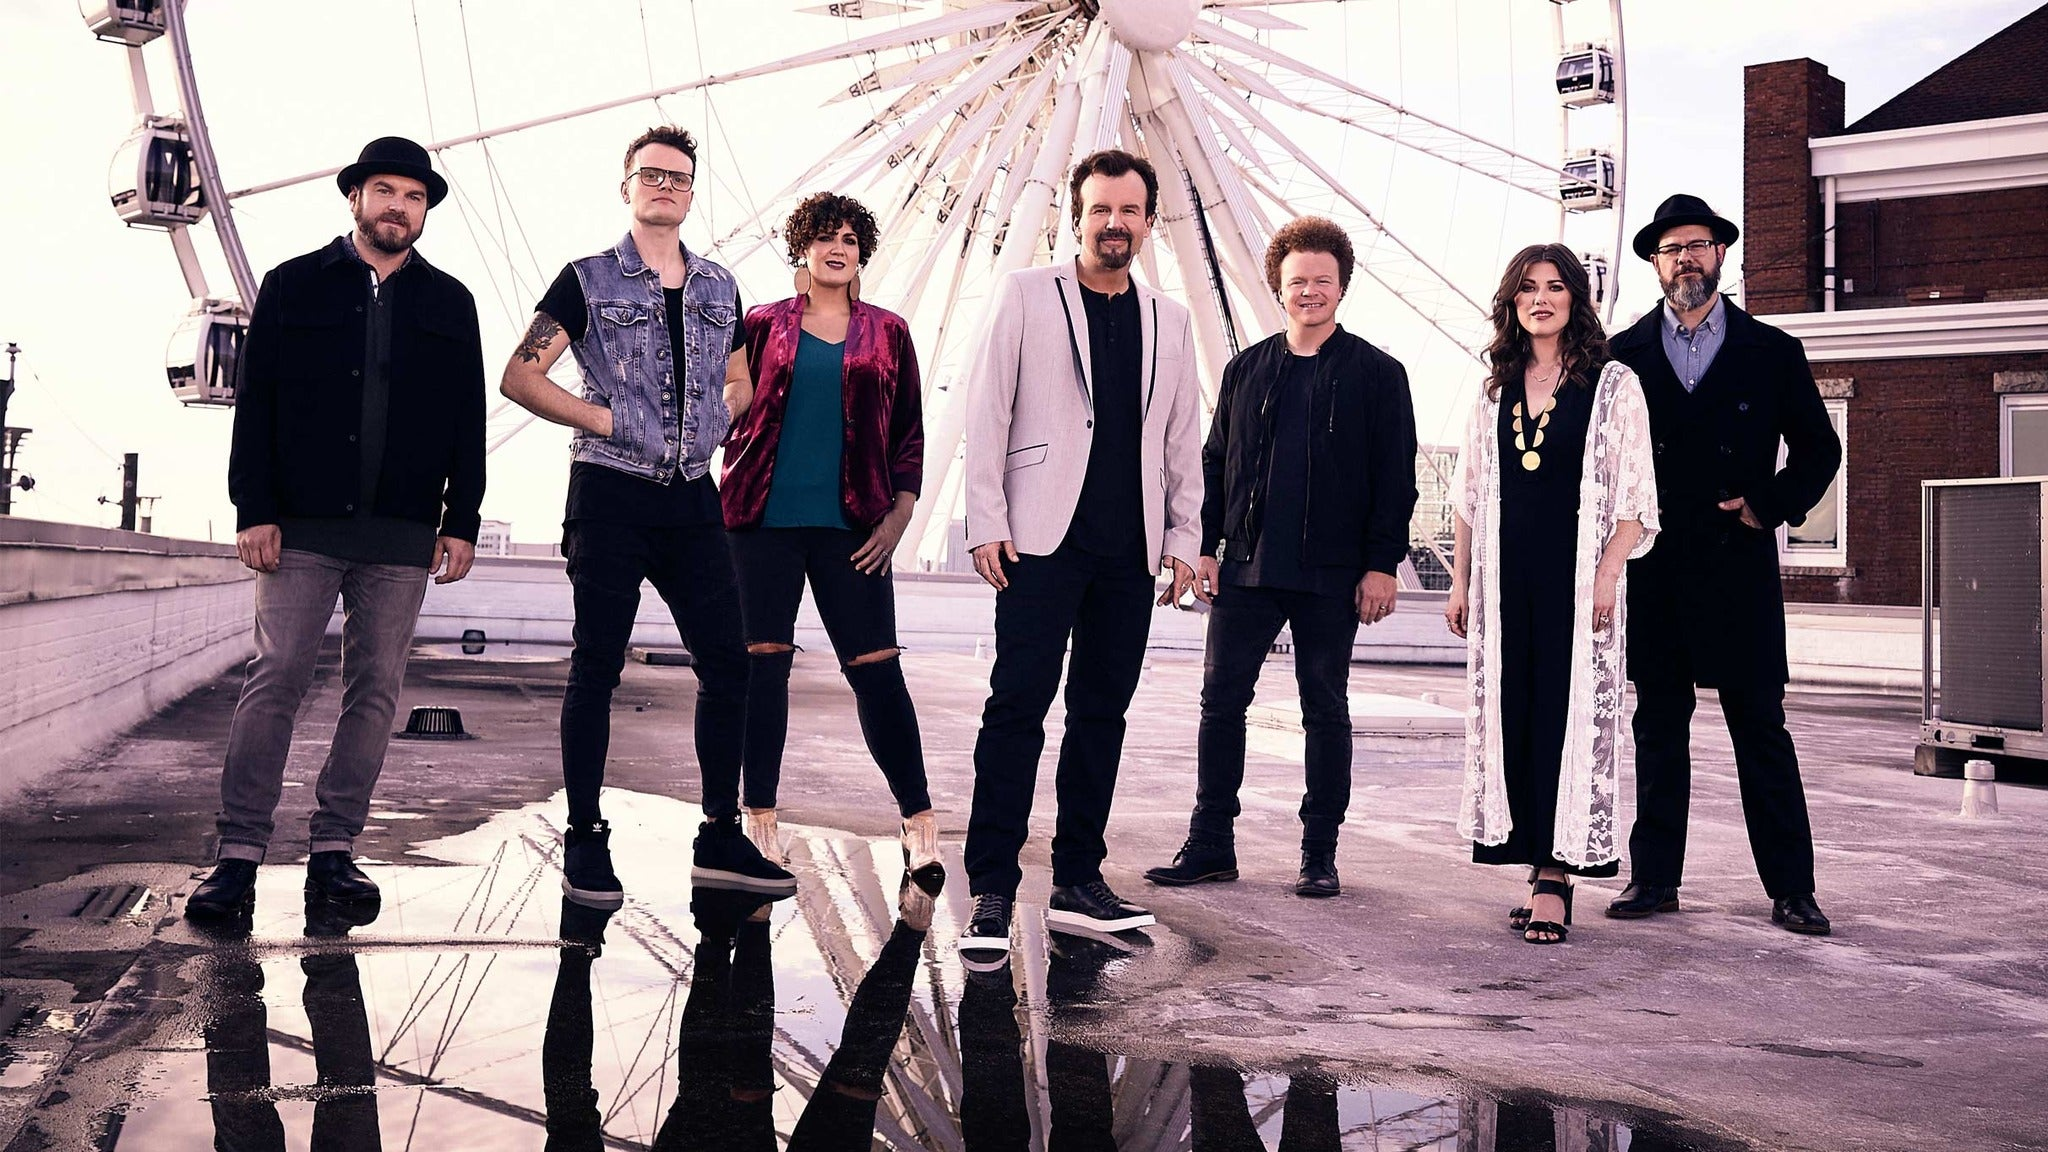 Casting Crowns - Only Jesus Tour Spring 2020